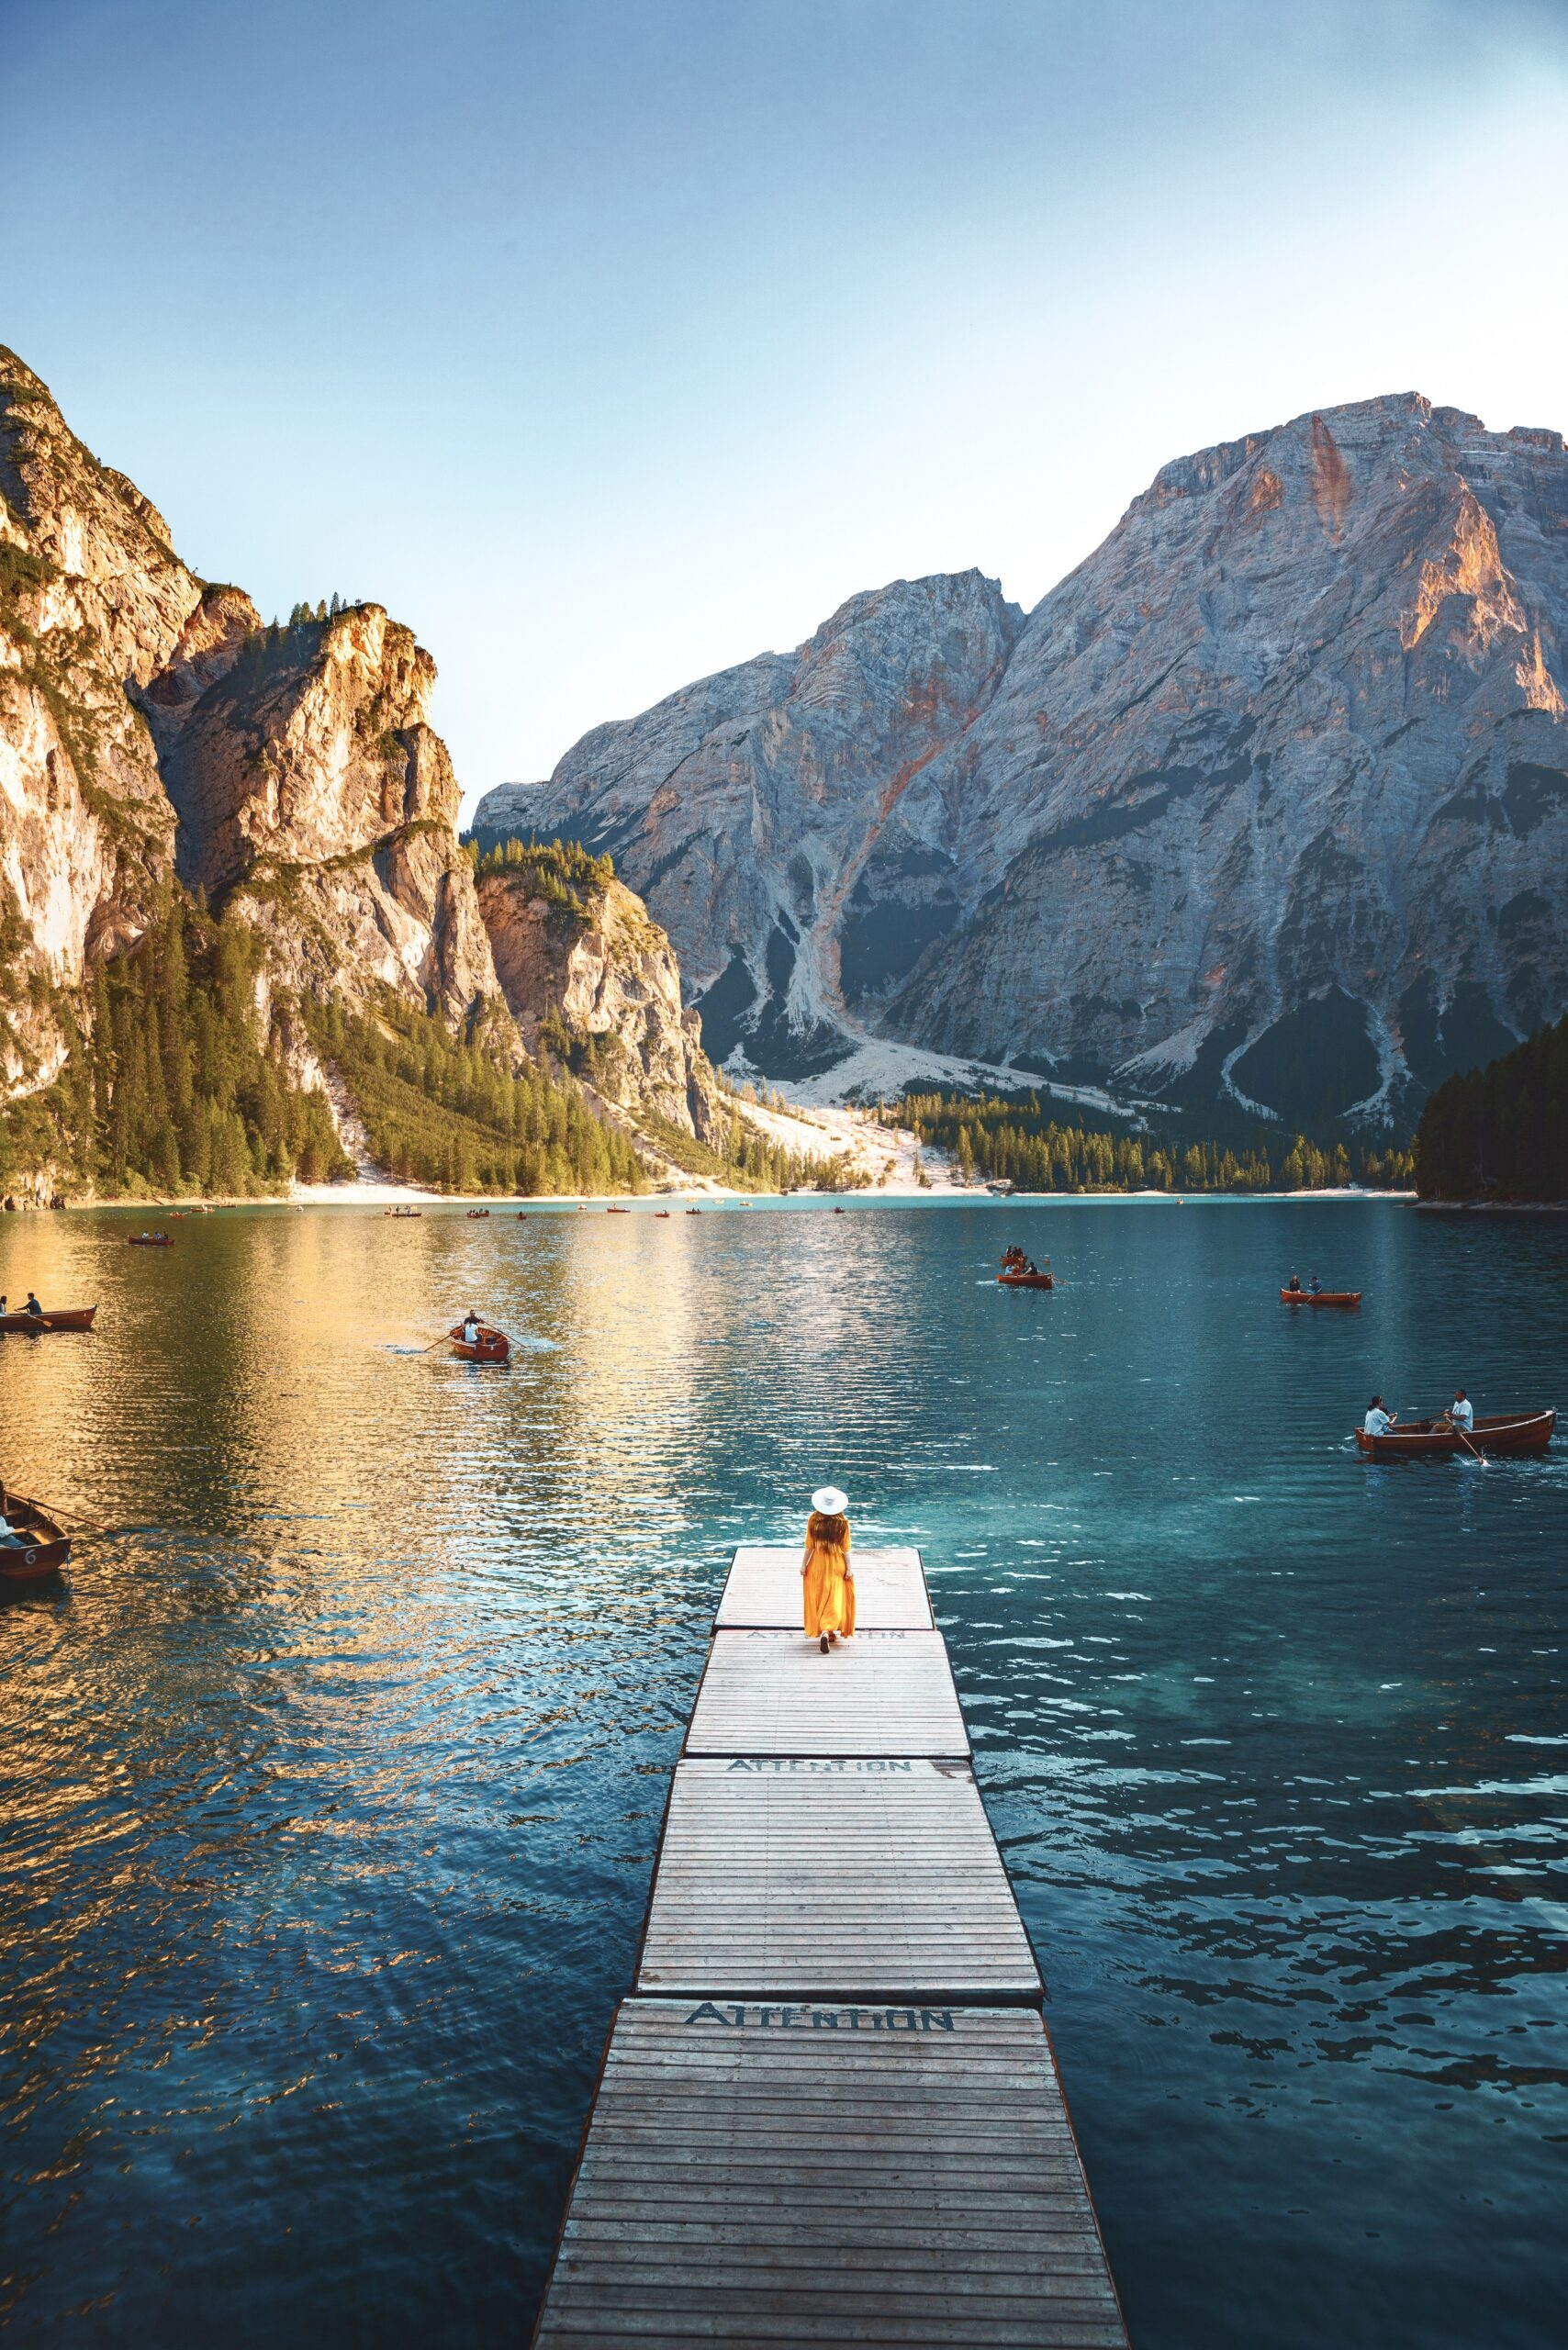 Lago Di Braies often photgraphed boat dock looking out over the mountains.